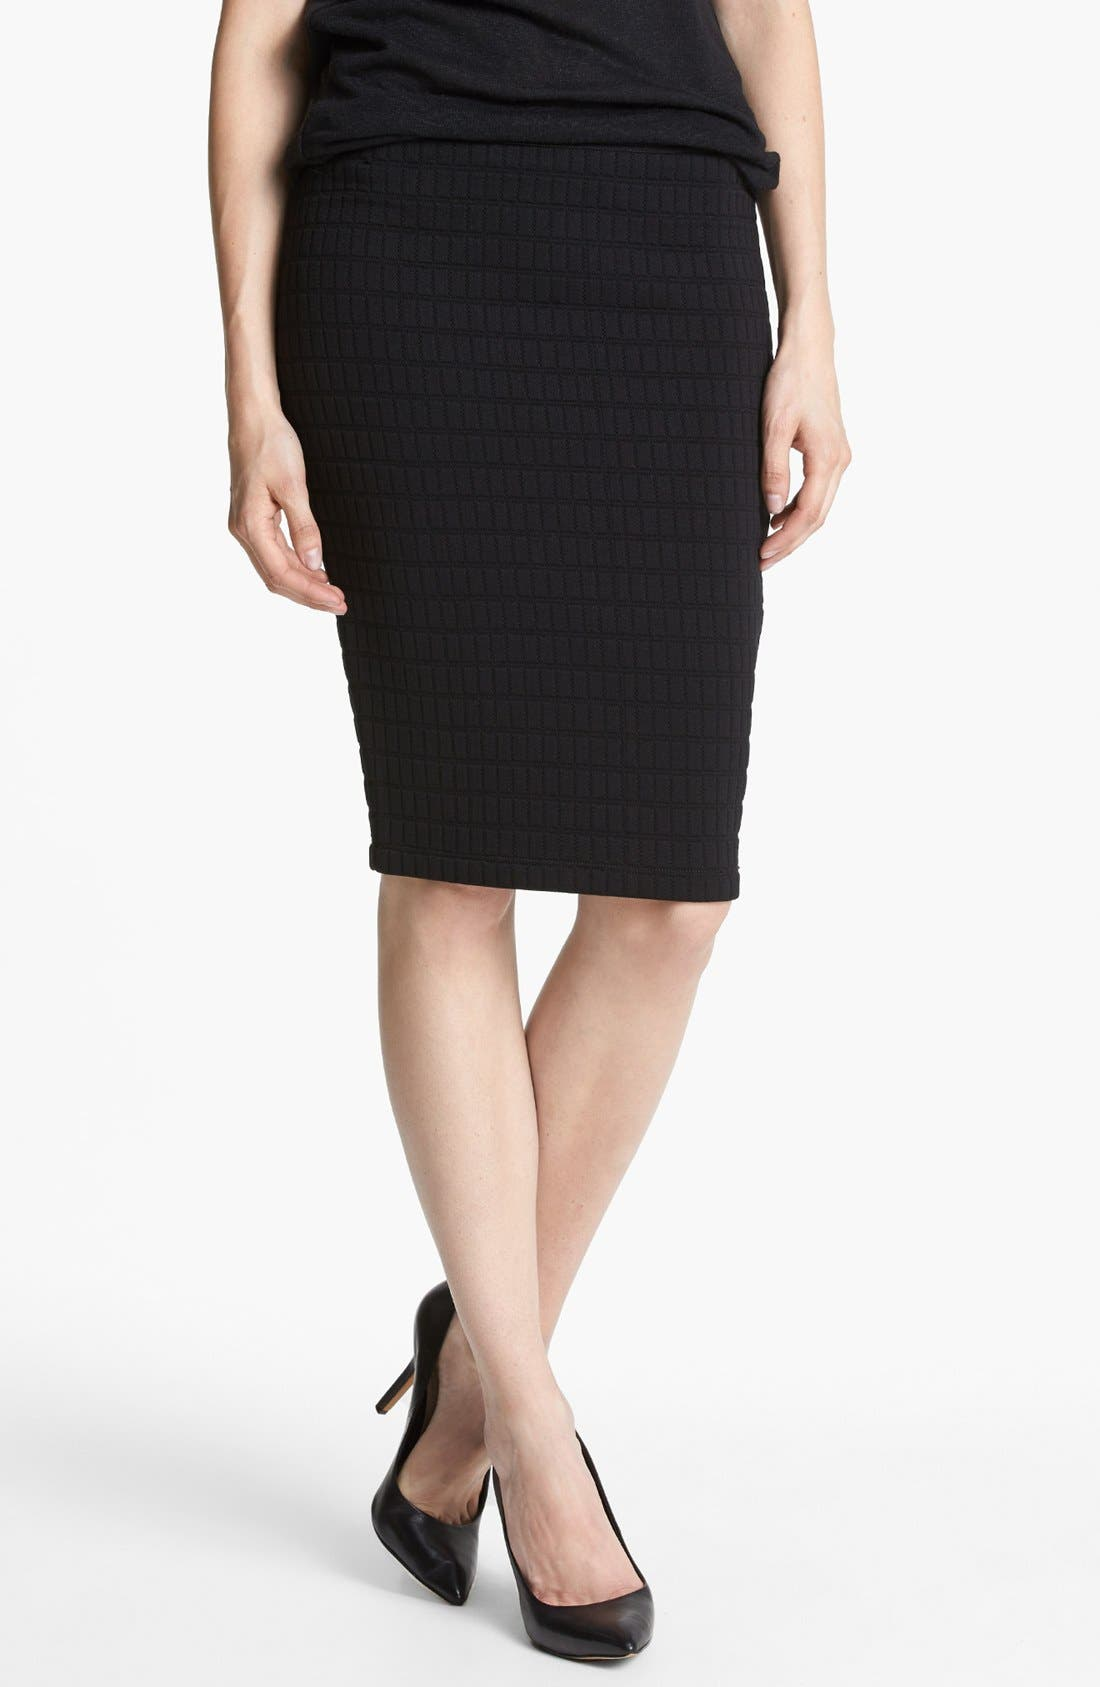 Alternate Image 1 Selected - Bailey 44 'Scanner' Textured Pencil Skirt